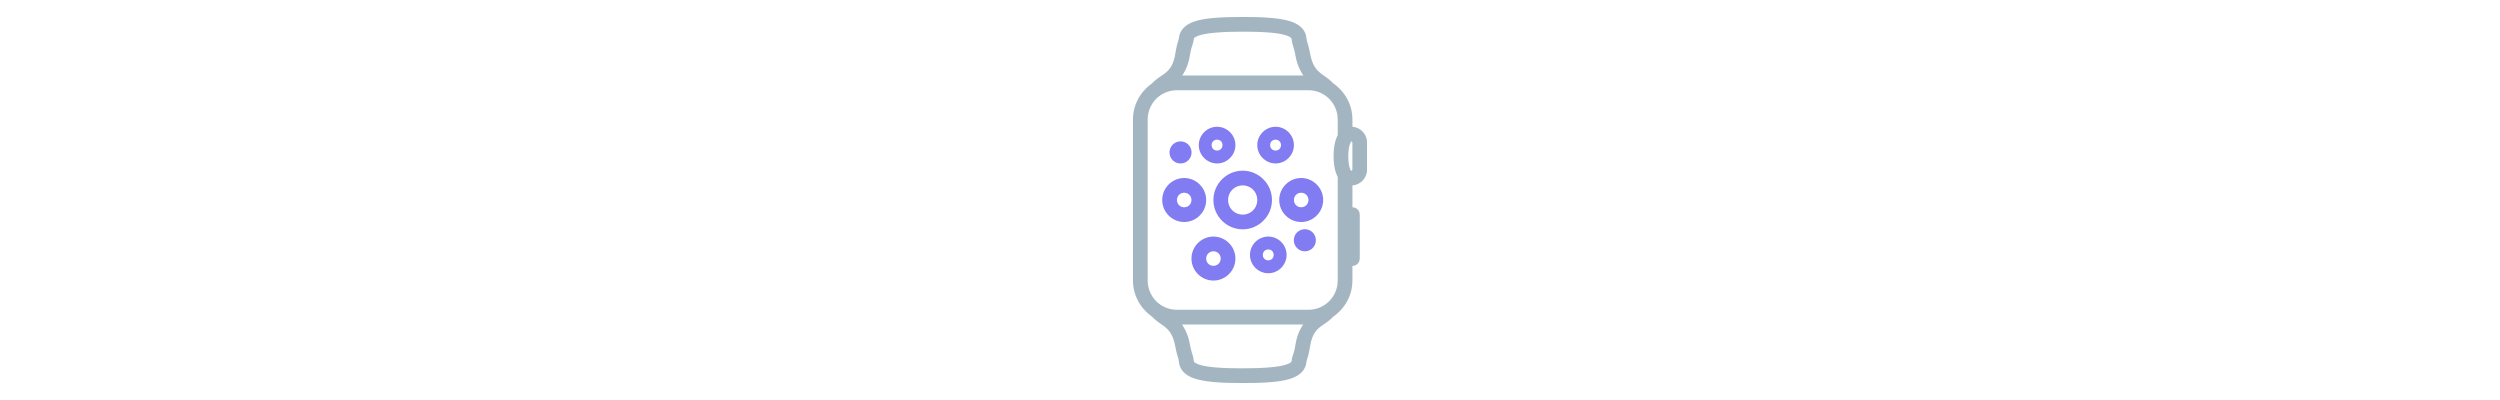 research-wearable-icon.png